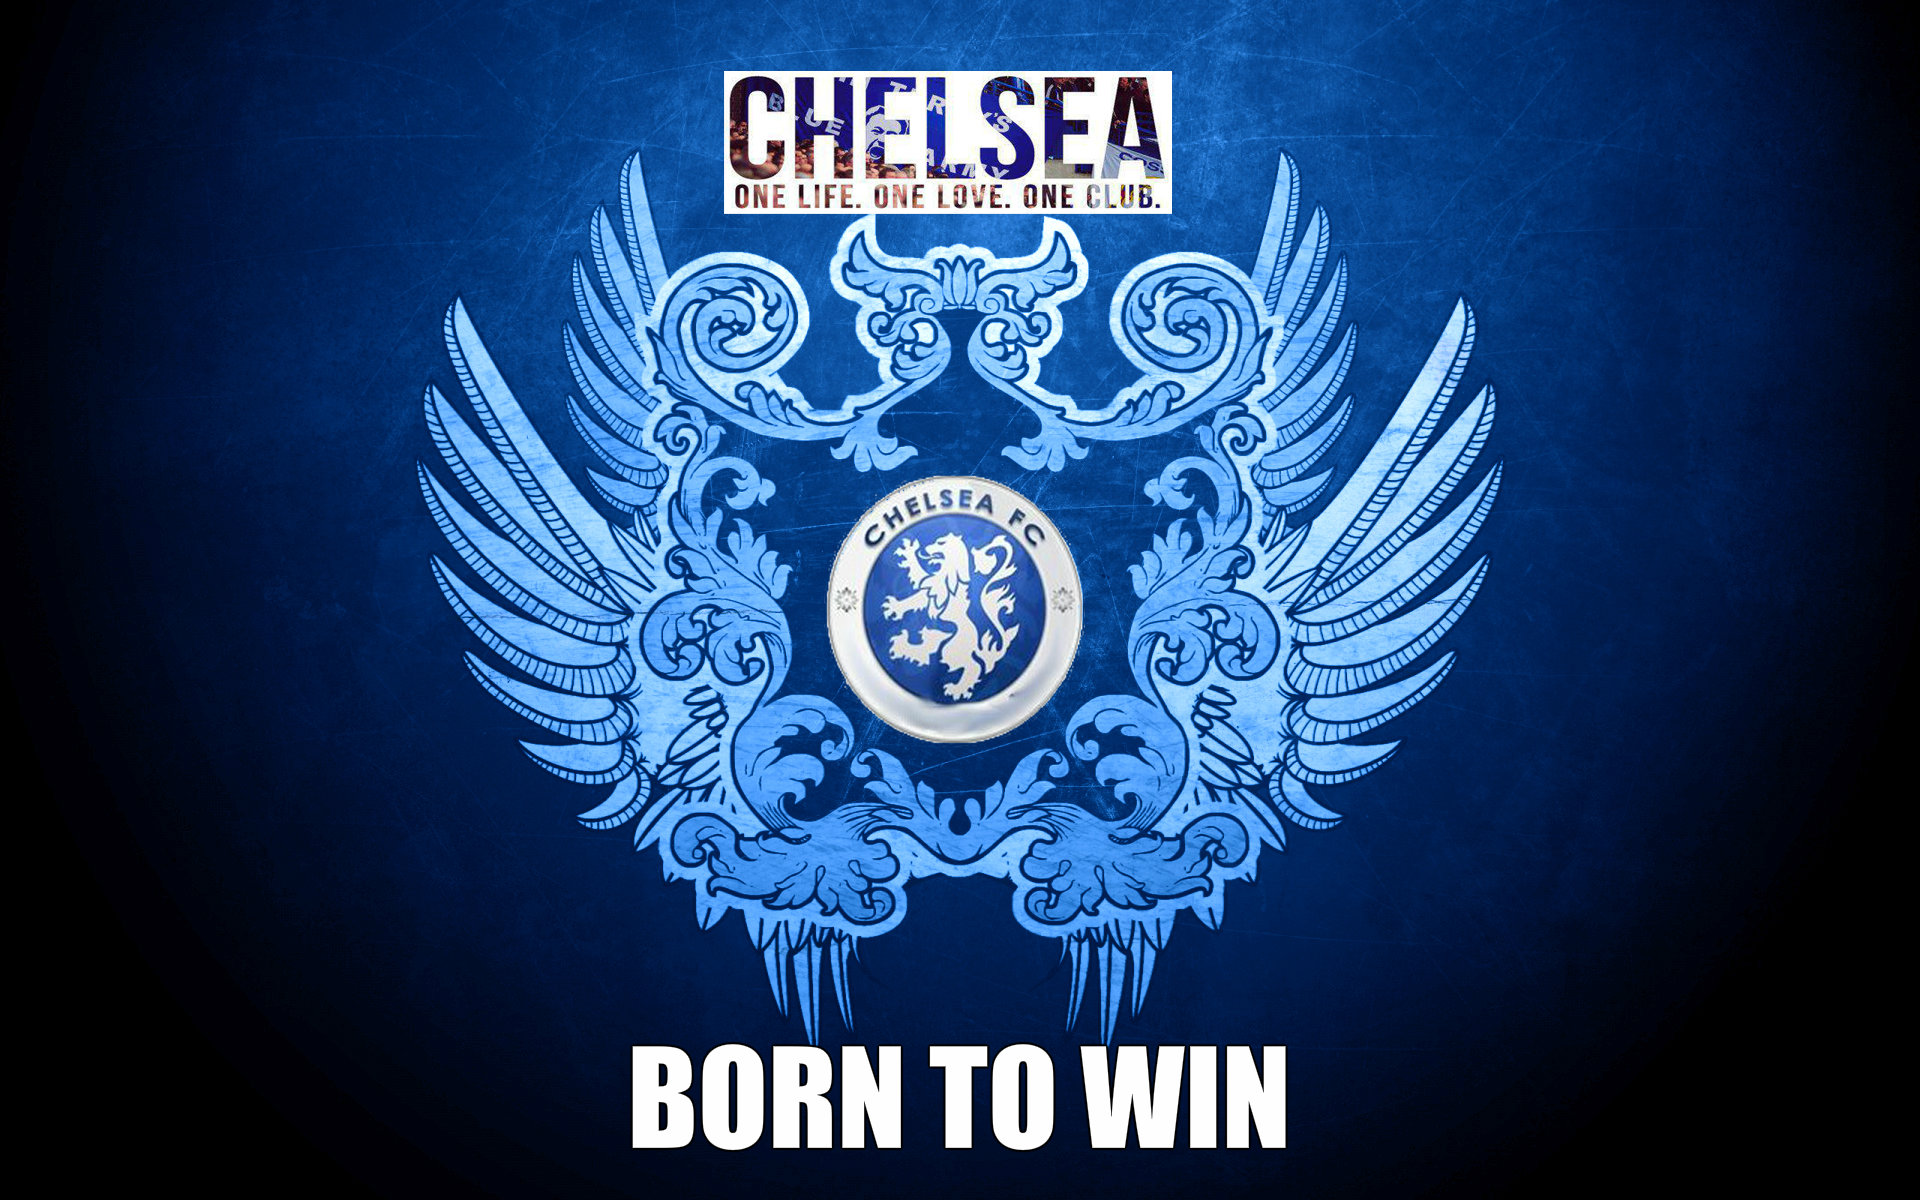 Chelsea FC images CHELSEA HD wallpaper and background photos 1920x1200